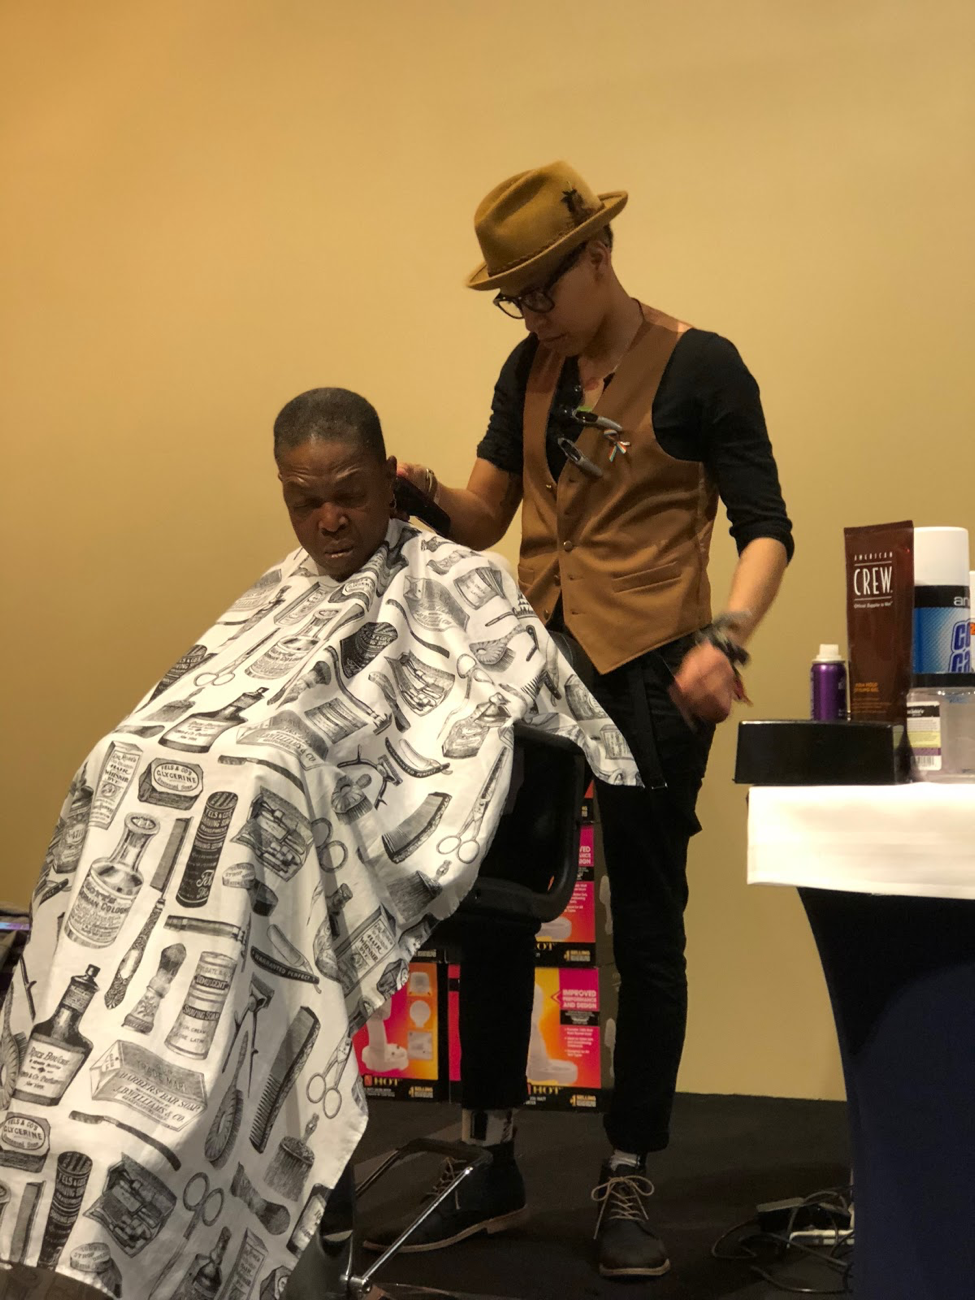 [Image description: photograph of the same two people in a barber shop. The person on the left is seated, facing the camera, and wearing a white barber cape. The person standing behind them is cutting their hair with clippers.]  Photo credit Mr. Cook